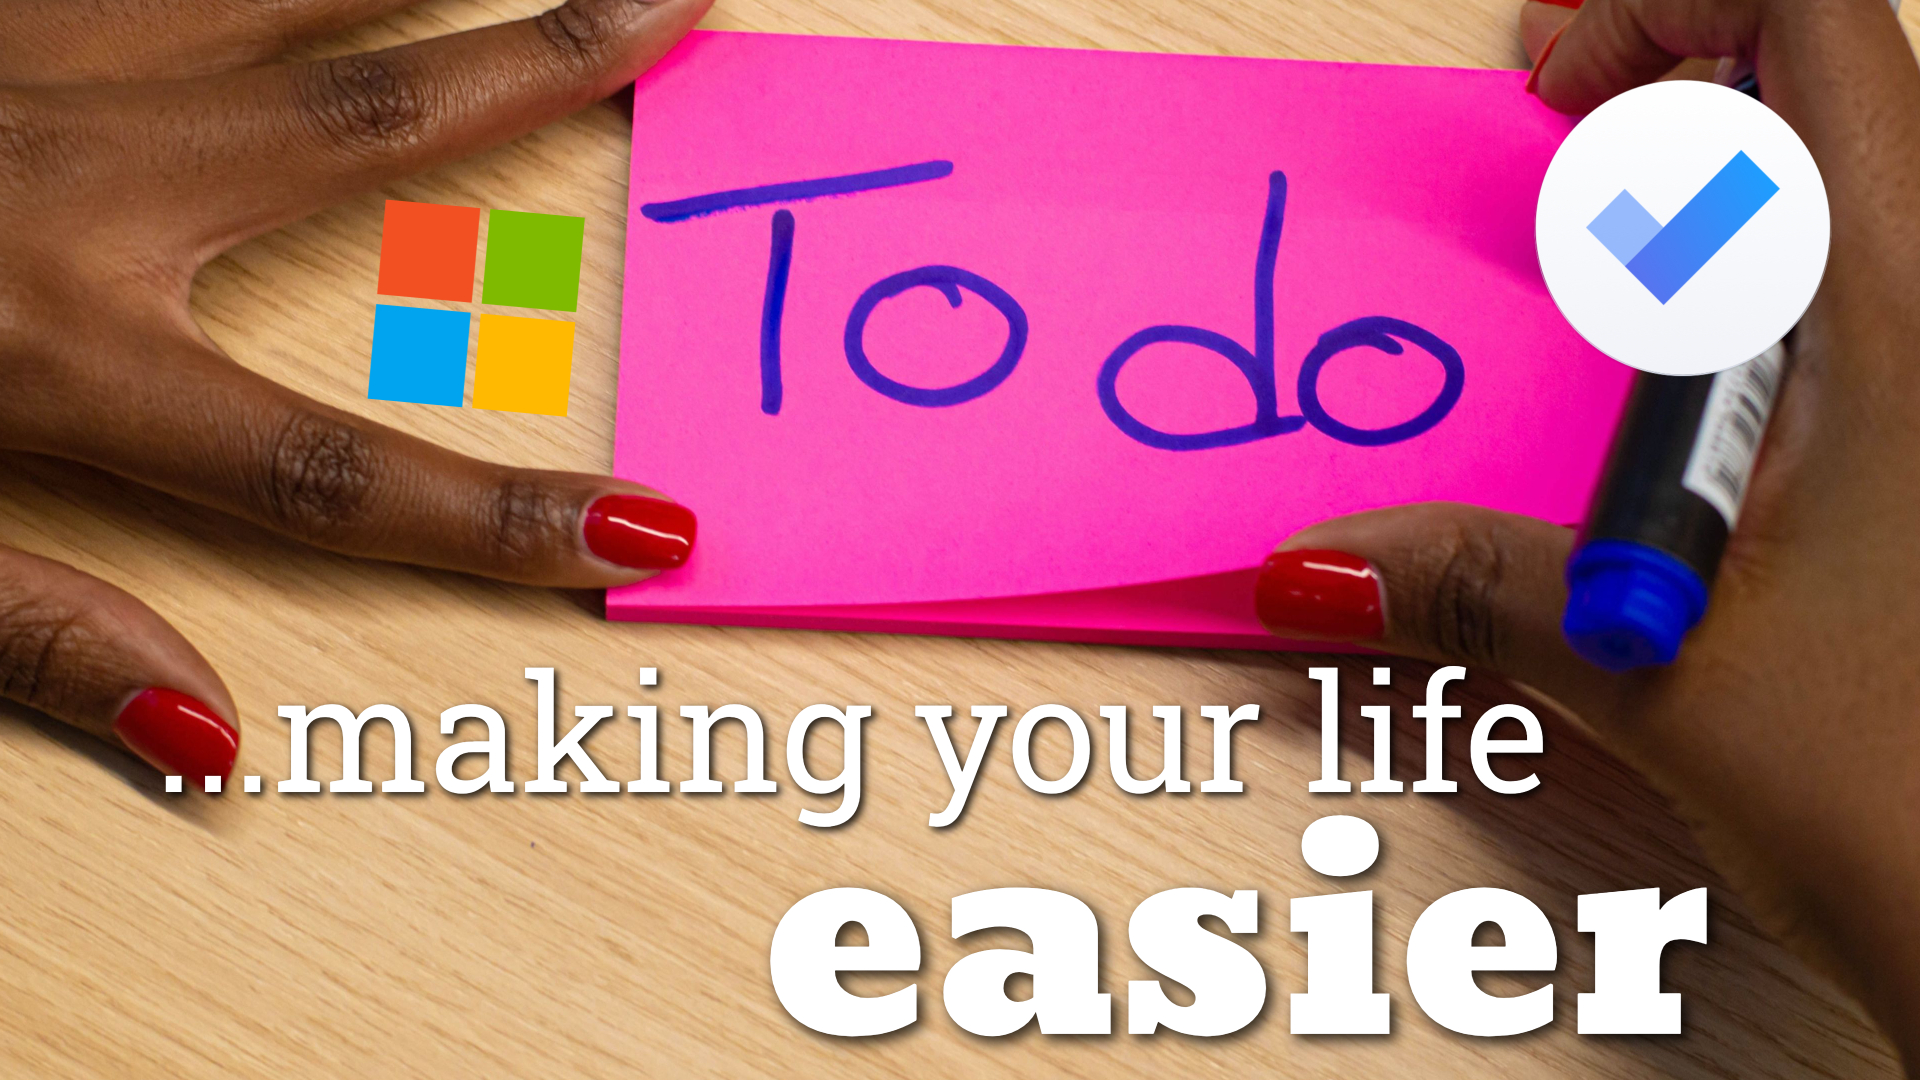 To Do: Making your life easier